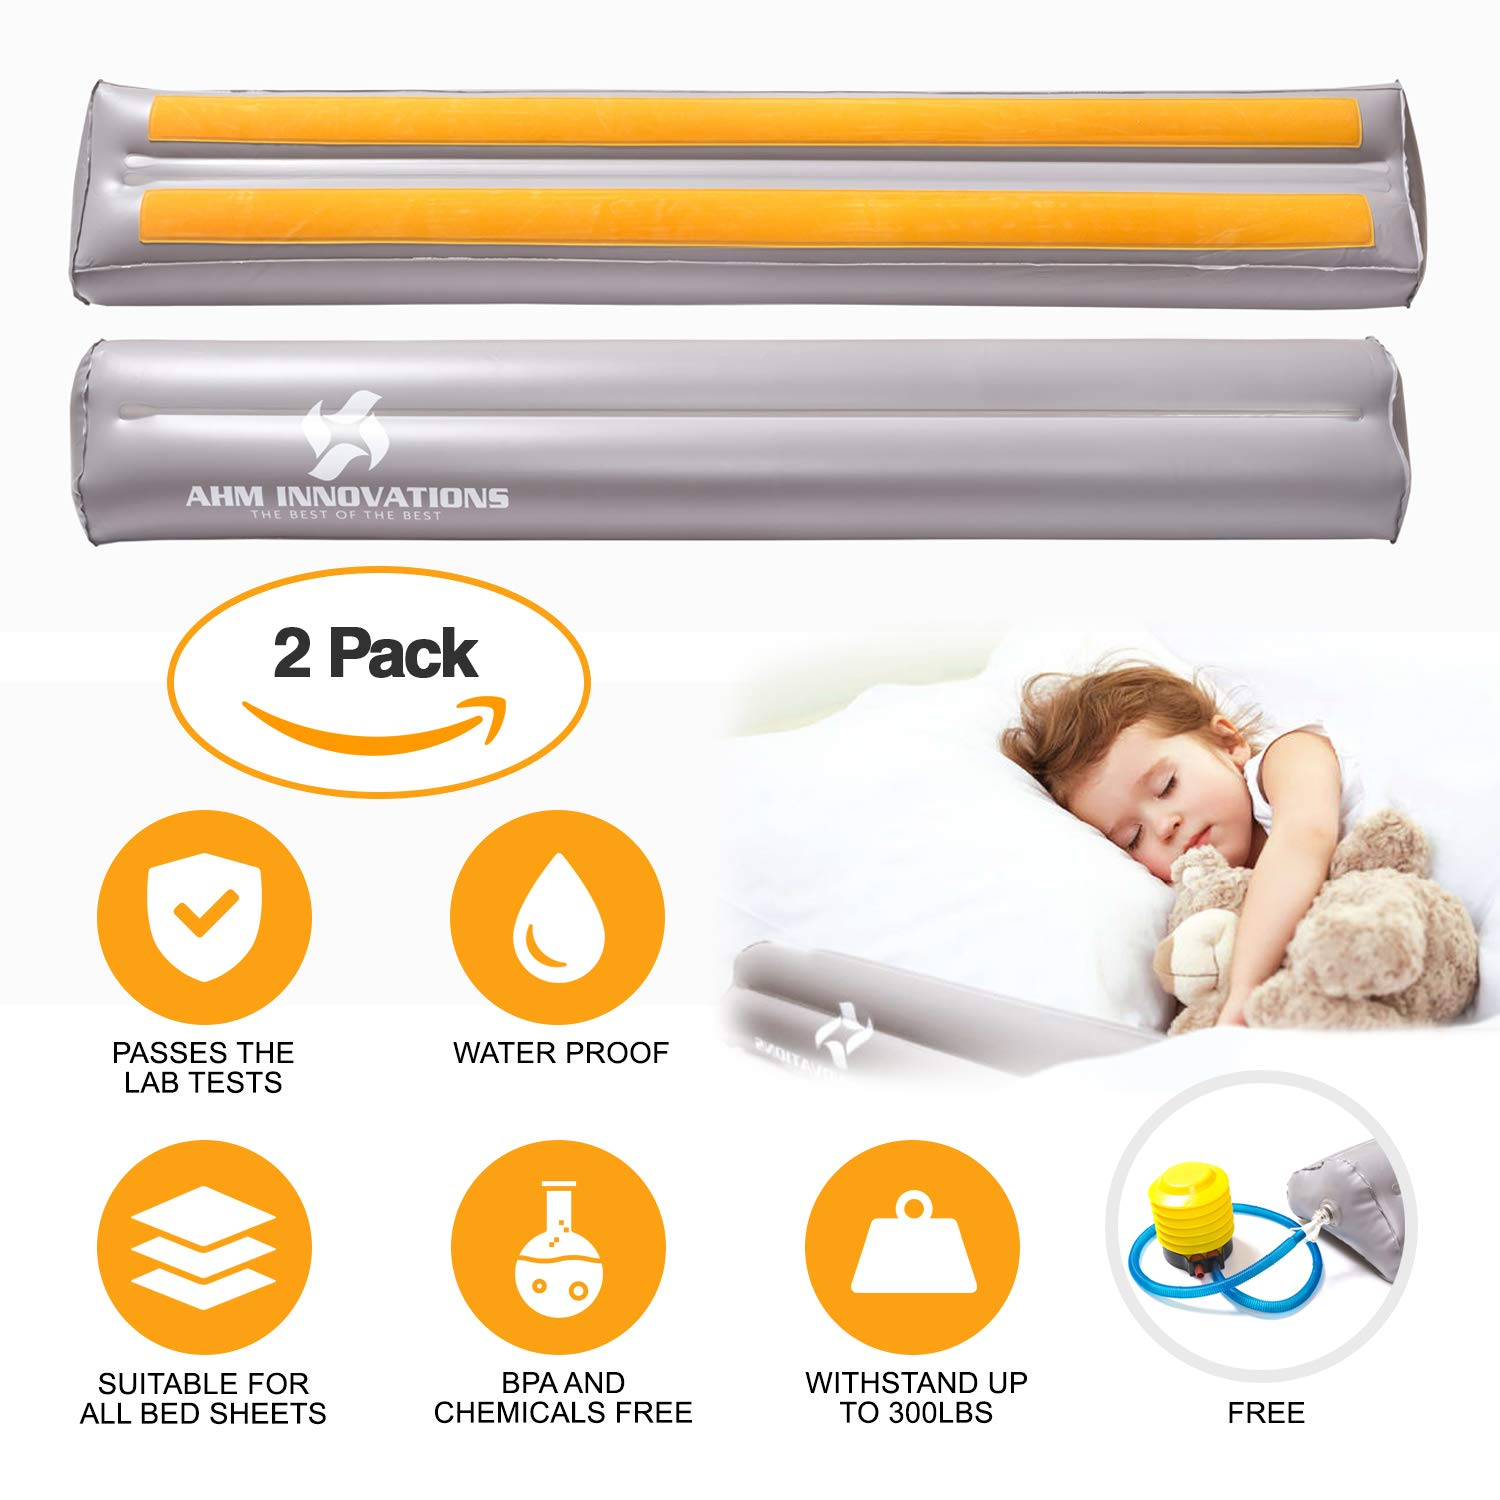 ⭐️⭐️⭐️⭐️⭐️Portable Toddler Bed Rail with Air Pump, Pack of 2 - Kids Inflatable Mattress Safety Guard with Water-Resistant Cover - Non-Slip Grip Safety Side Pillow Rail - Leak Proof & Fits All Sizes